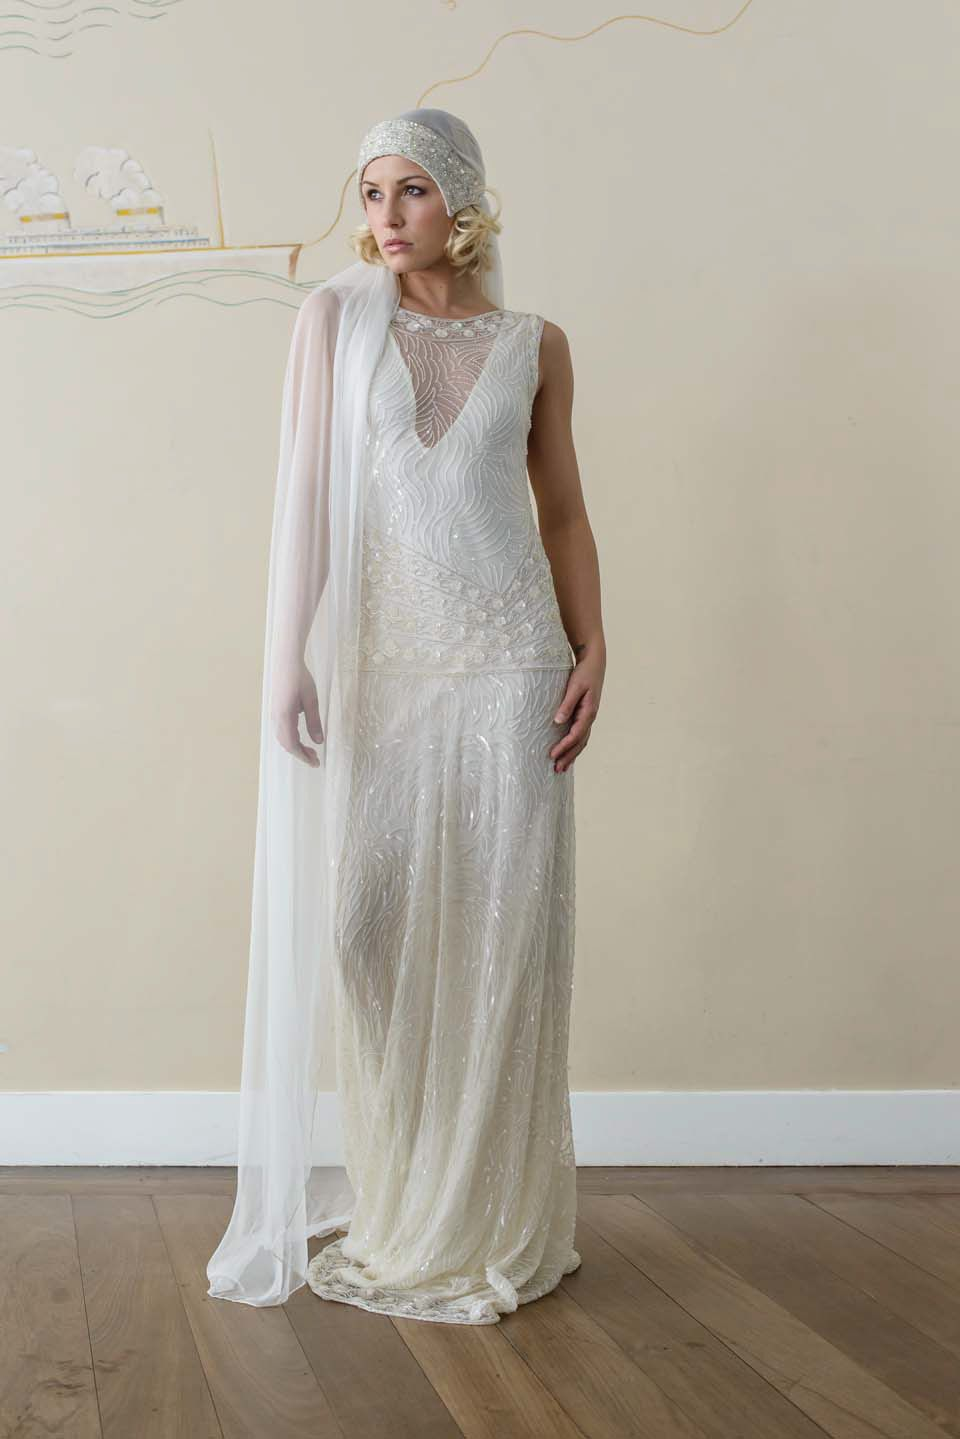 Vicky rowe a debut collection of 1920s and 1930s inspired vicky rowe a debut collection of 1920s and 1930s inspired heirloom style wedding dresses ombrellifo Image collections